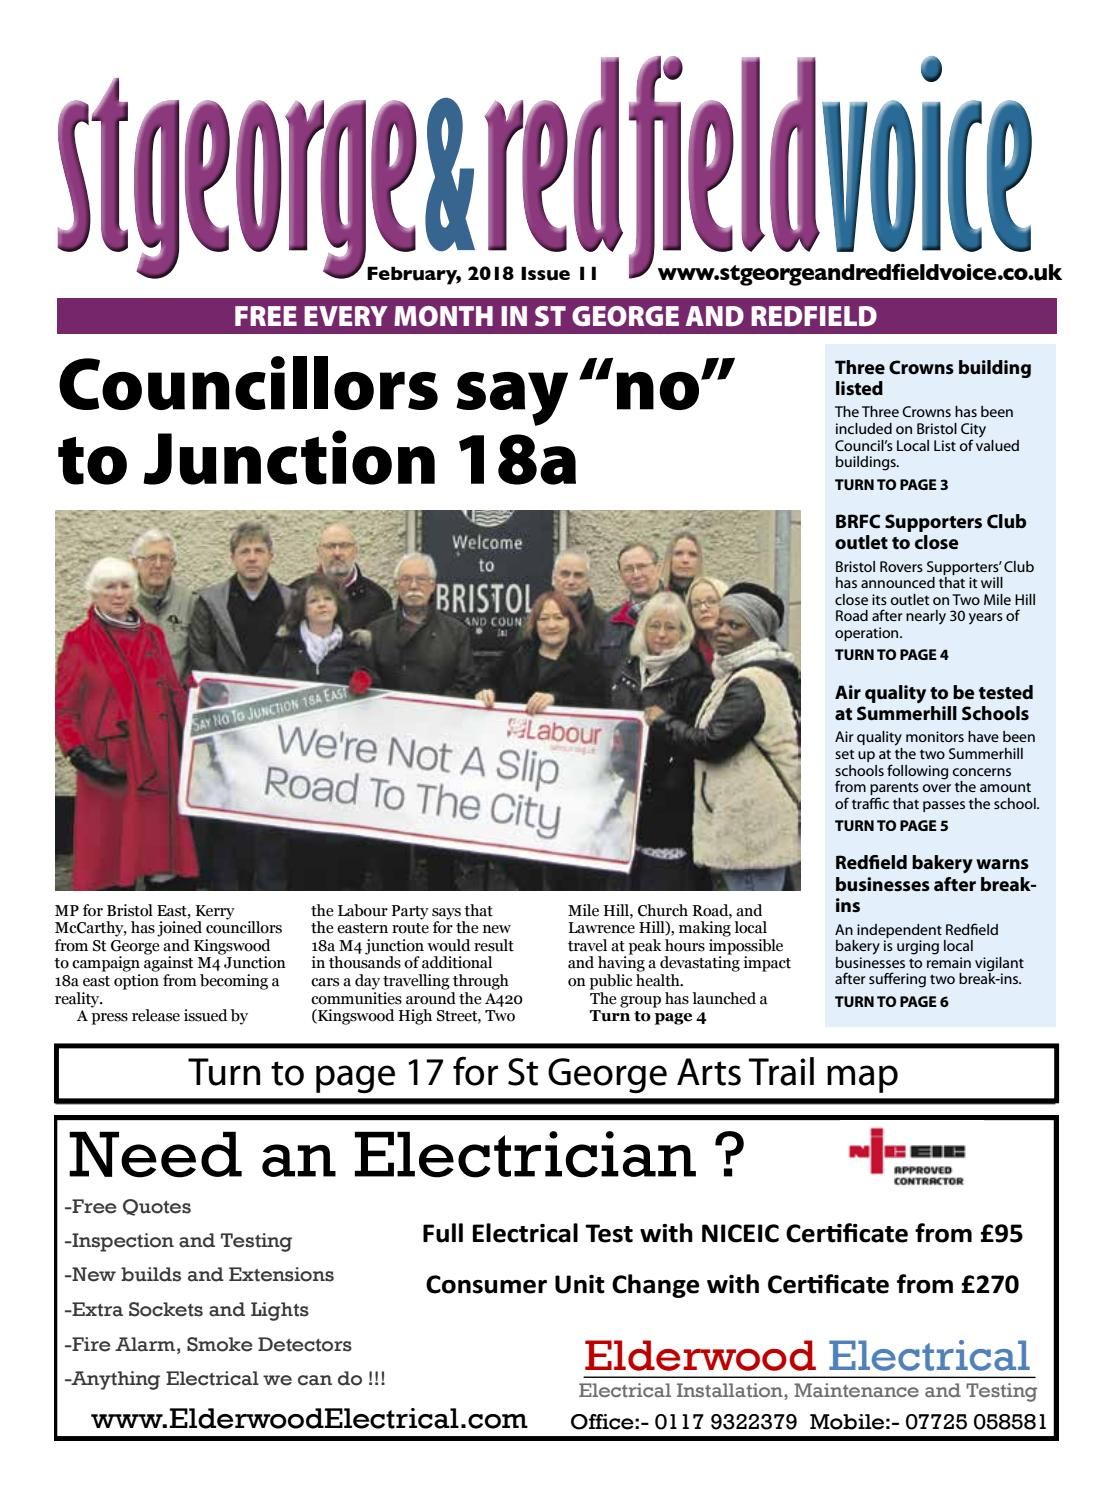 St George & Redfield Voice, February 2018 by St George